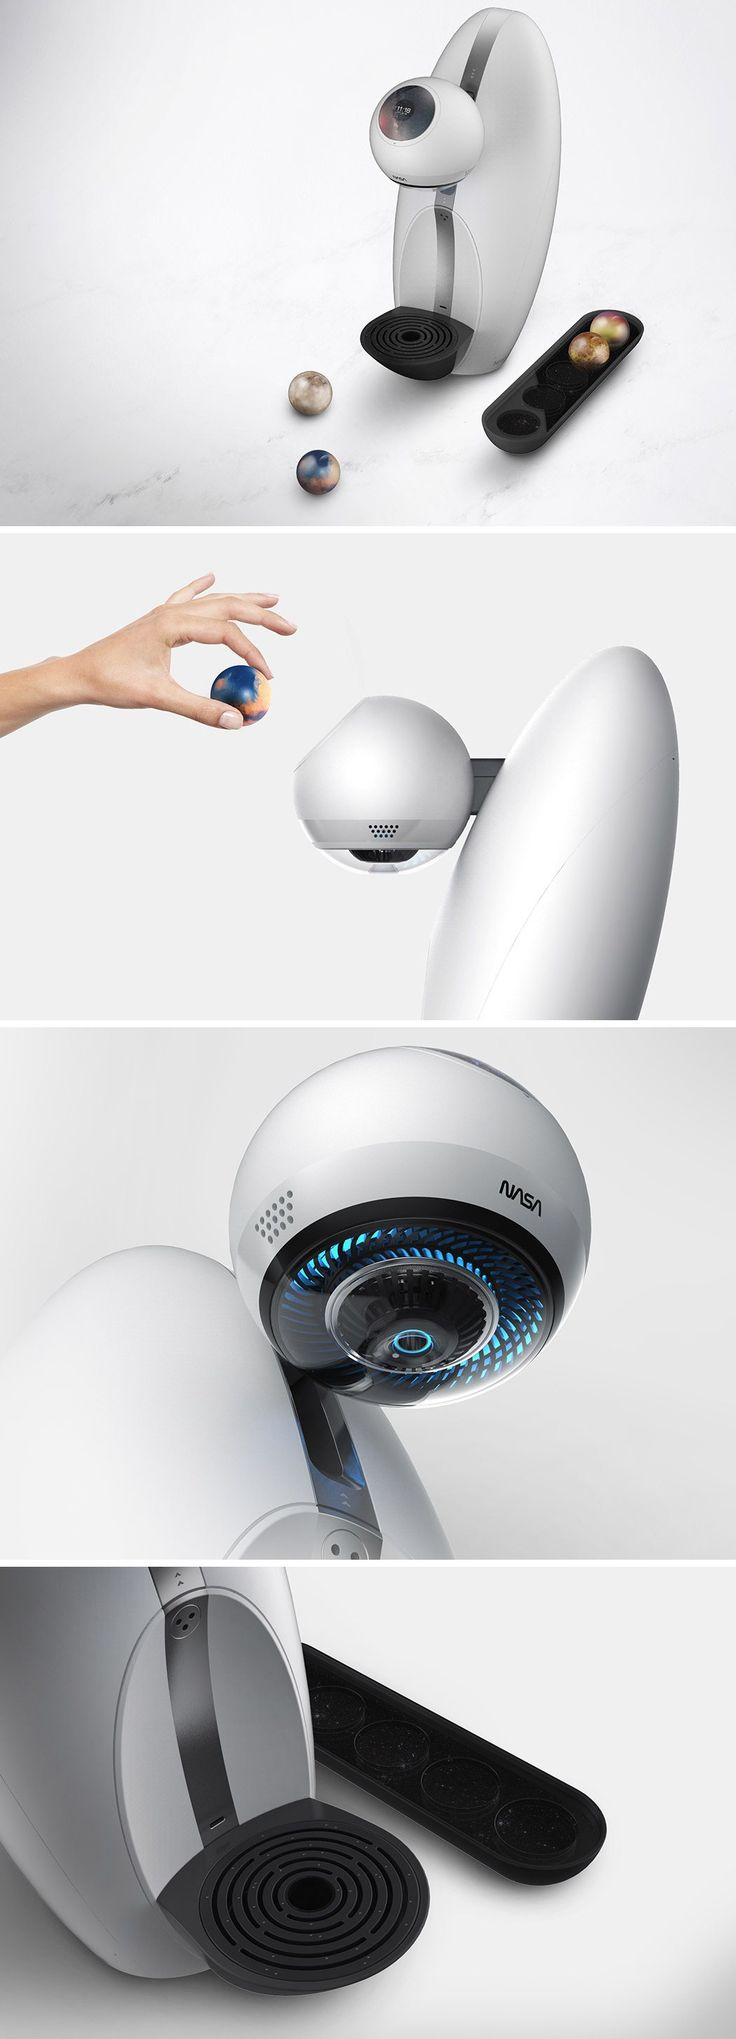 What if NASA made a coffee maker? This stellar concept called Dot/Dot explores this very question! Applying the design language of the aeronautic giant, this coffee pod machine takes on a never before seen aesthetic that caffeine cravers and space enthusiasts alike will appreciate.